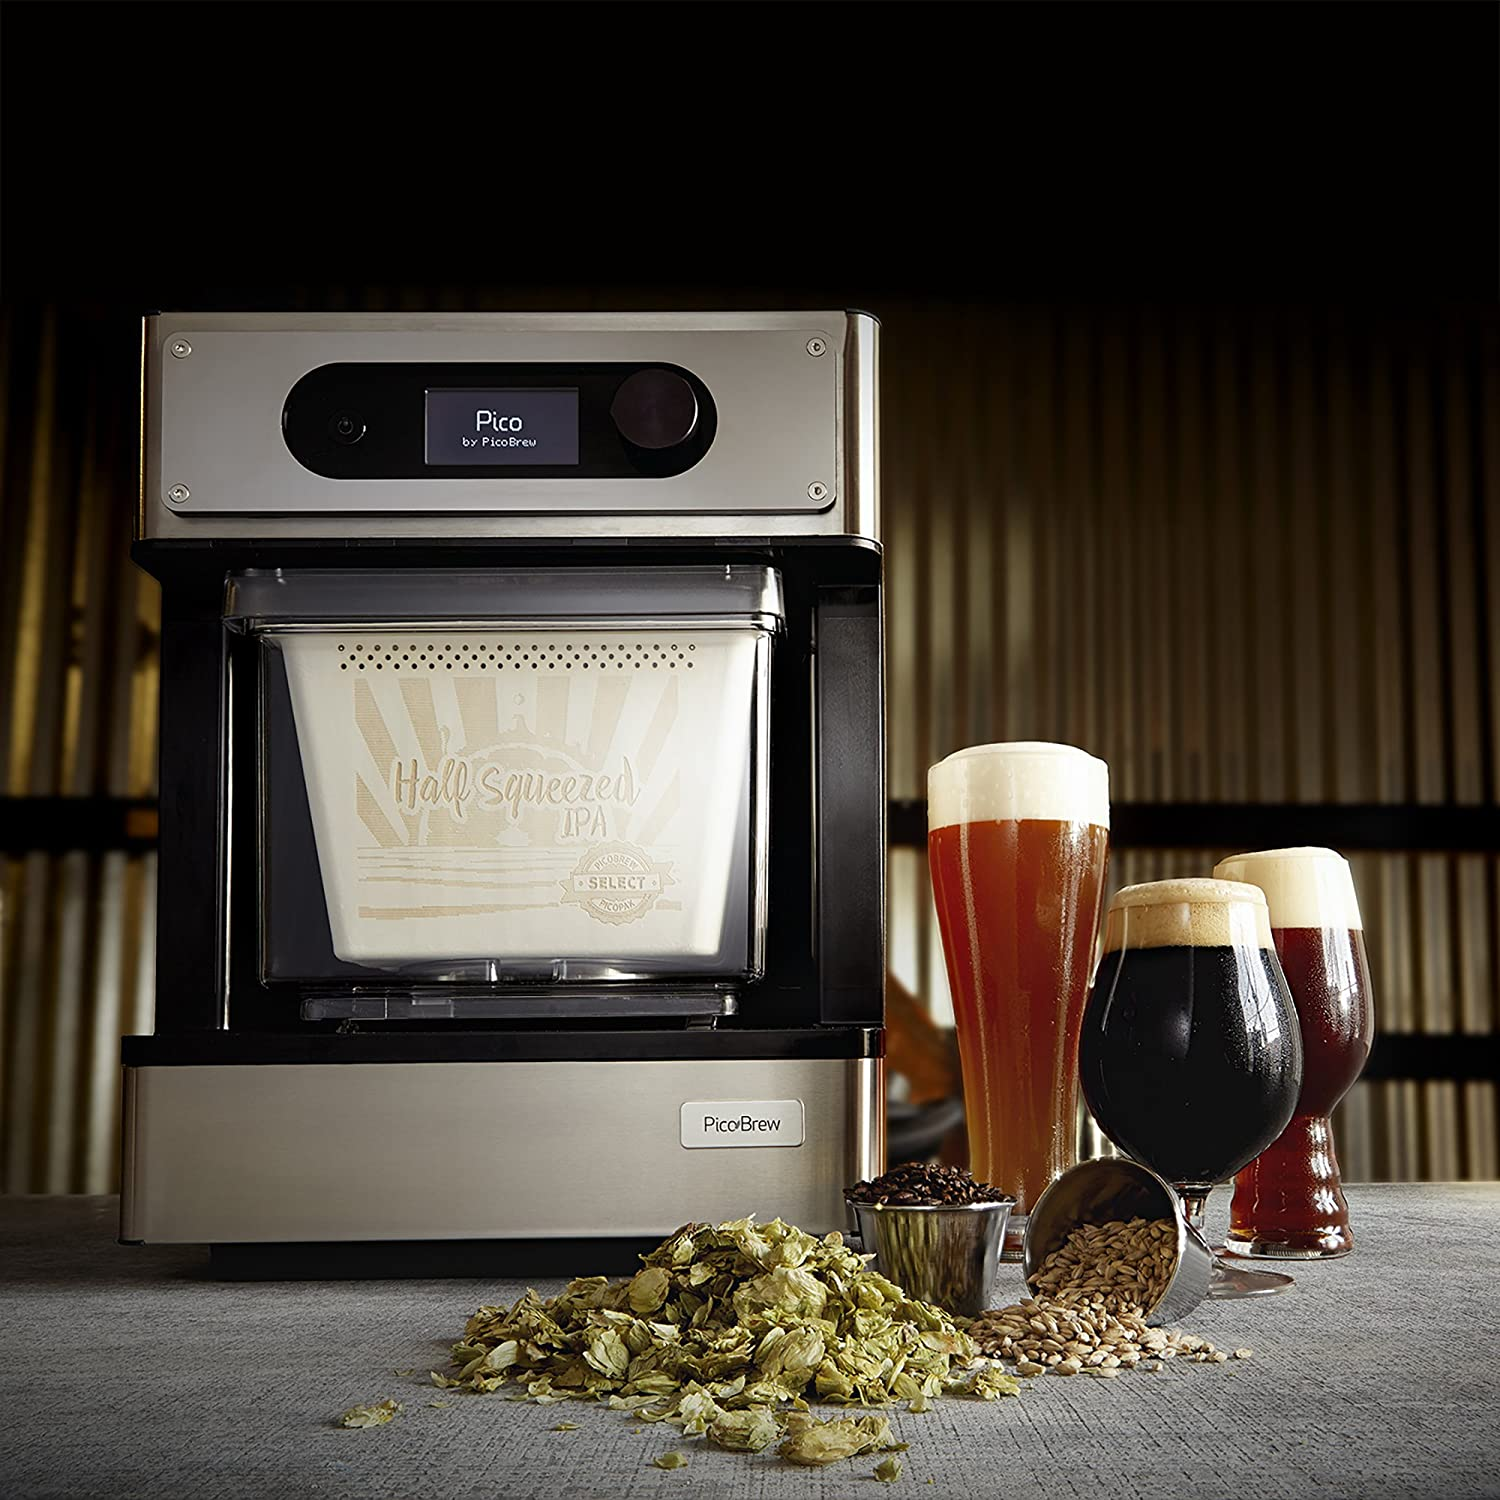 PicoBrew Pro Craft Beer Brewing Appliance for Homebrewing